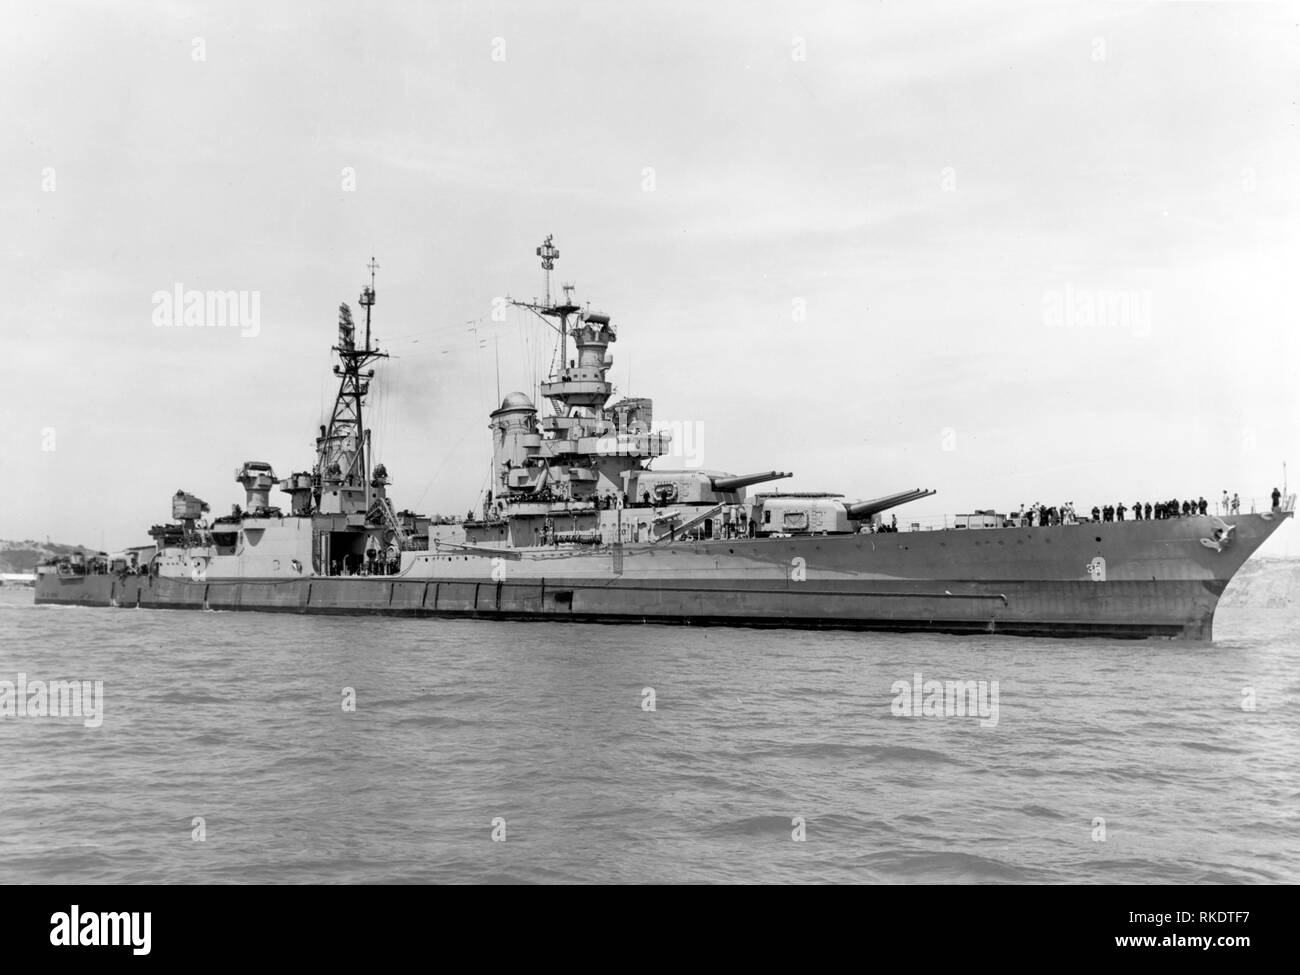 The U.S. Navy heavy cruiser USS Indianapolis (CA-35) off the Mare Island Naval Shipyard, California (USA), on 10 July 1945, after her final overhaul and repair of combat damage. The photo was taken before the ship delivered atomic bomb components to Tinian and just 20 days before she was sunk by a Japanese submarine. - Stock Image